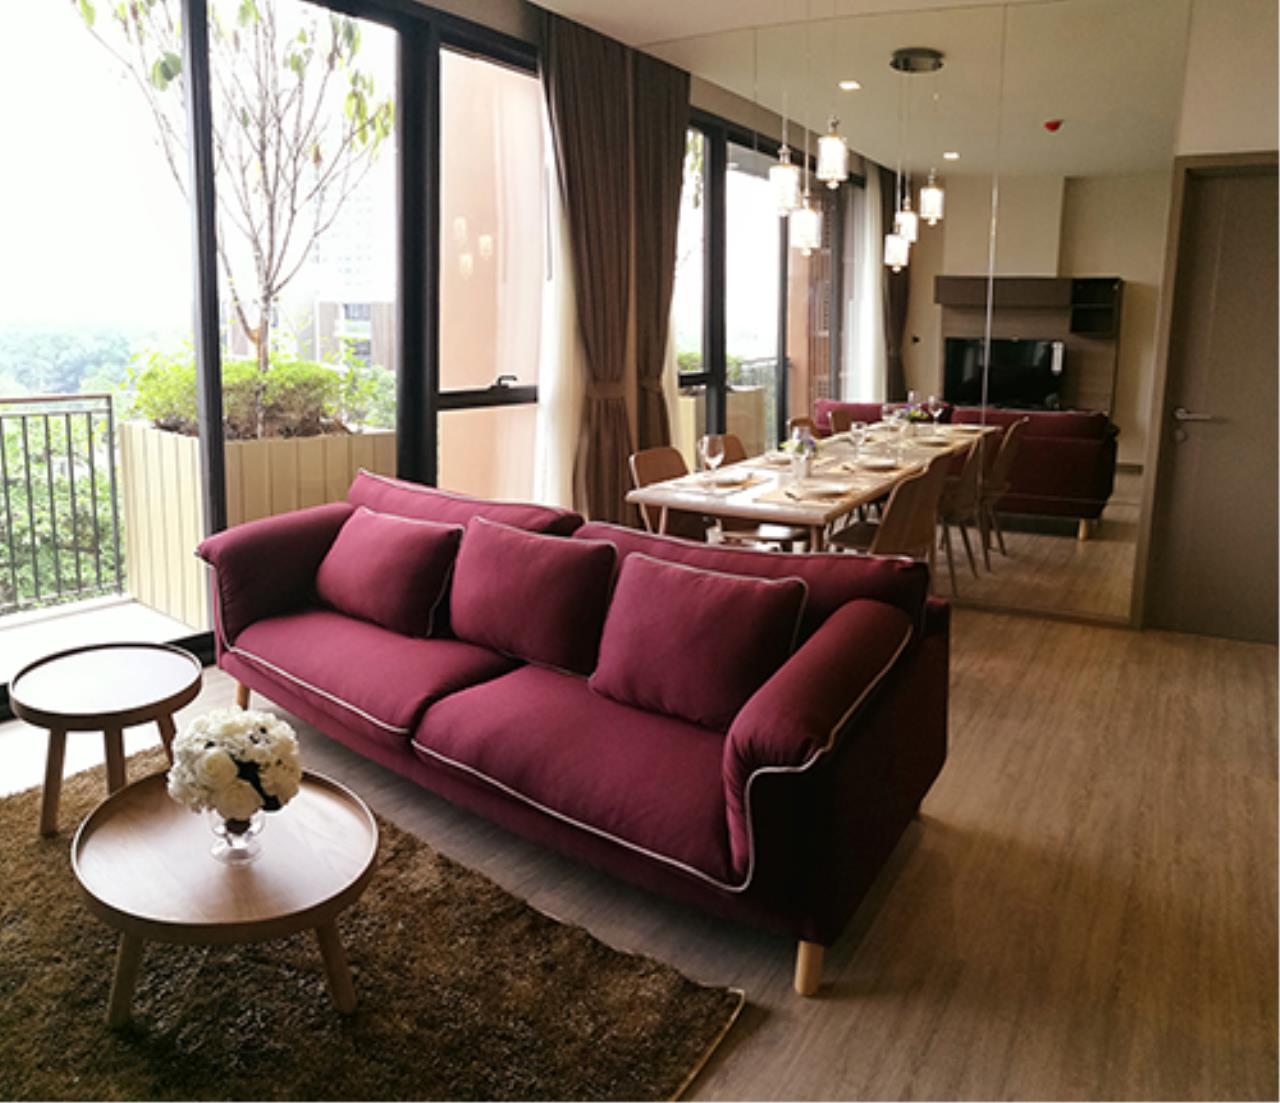 RE/MAX All Star Realty Agency's Mori Haus (Sukhumvit 77) 2 bedrooms for Rent 40k 3